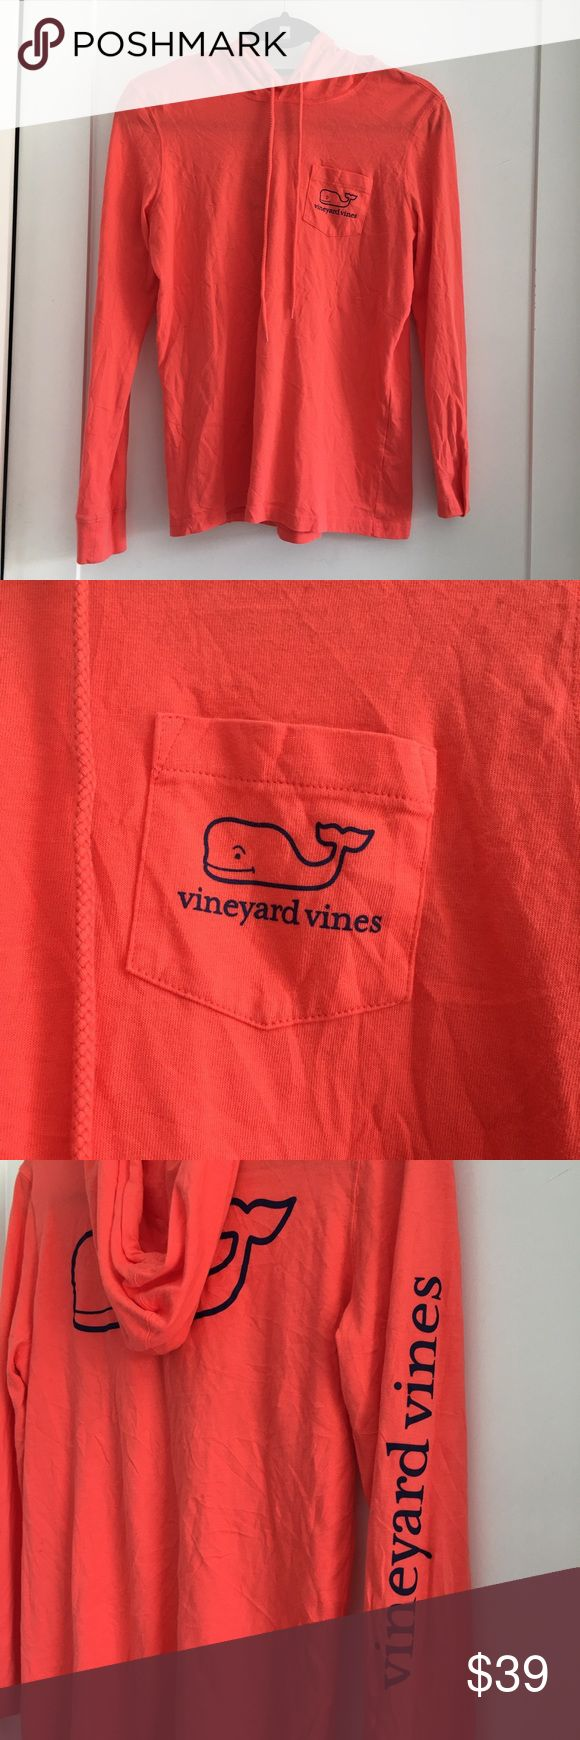 "Vineyard Vines Women's Orange Hooded Shirt size XS Preowned authentic Vineyard Vines Women's Orange Long Sleeve Hooded Shirt size XS. Armpit to armpit is 19"" inches. Excellent used condition. Please look at pictures for better reference. Thank you for looking and happy shopping! Vineyard Vines Tops Tees - Long Sleeve"